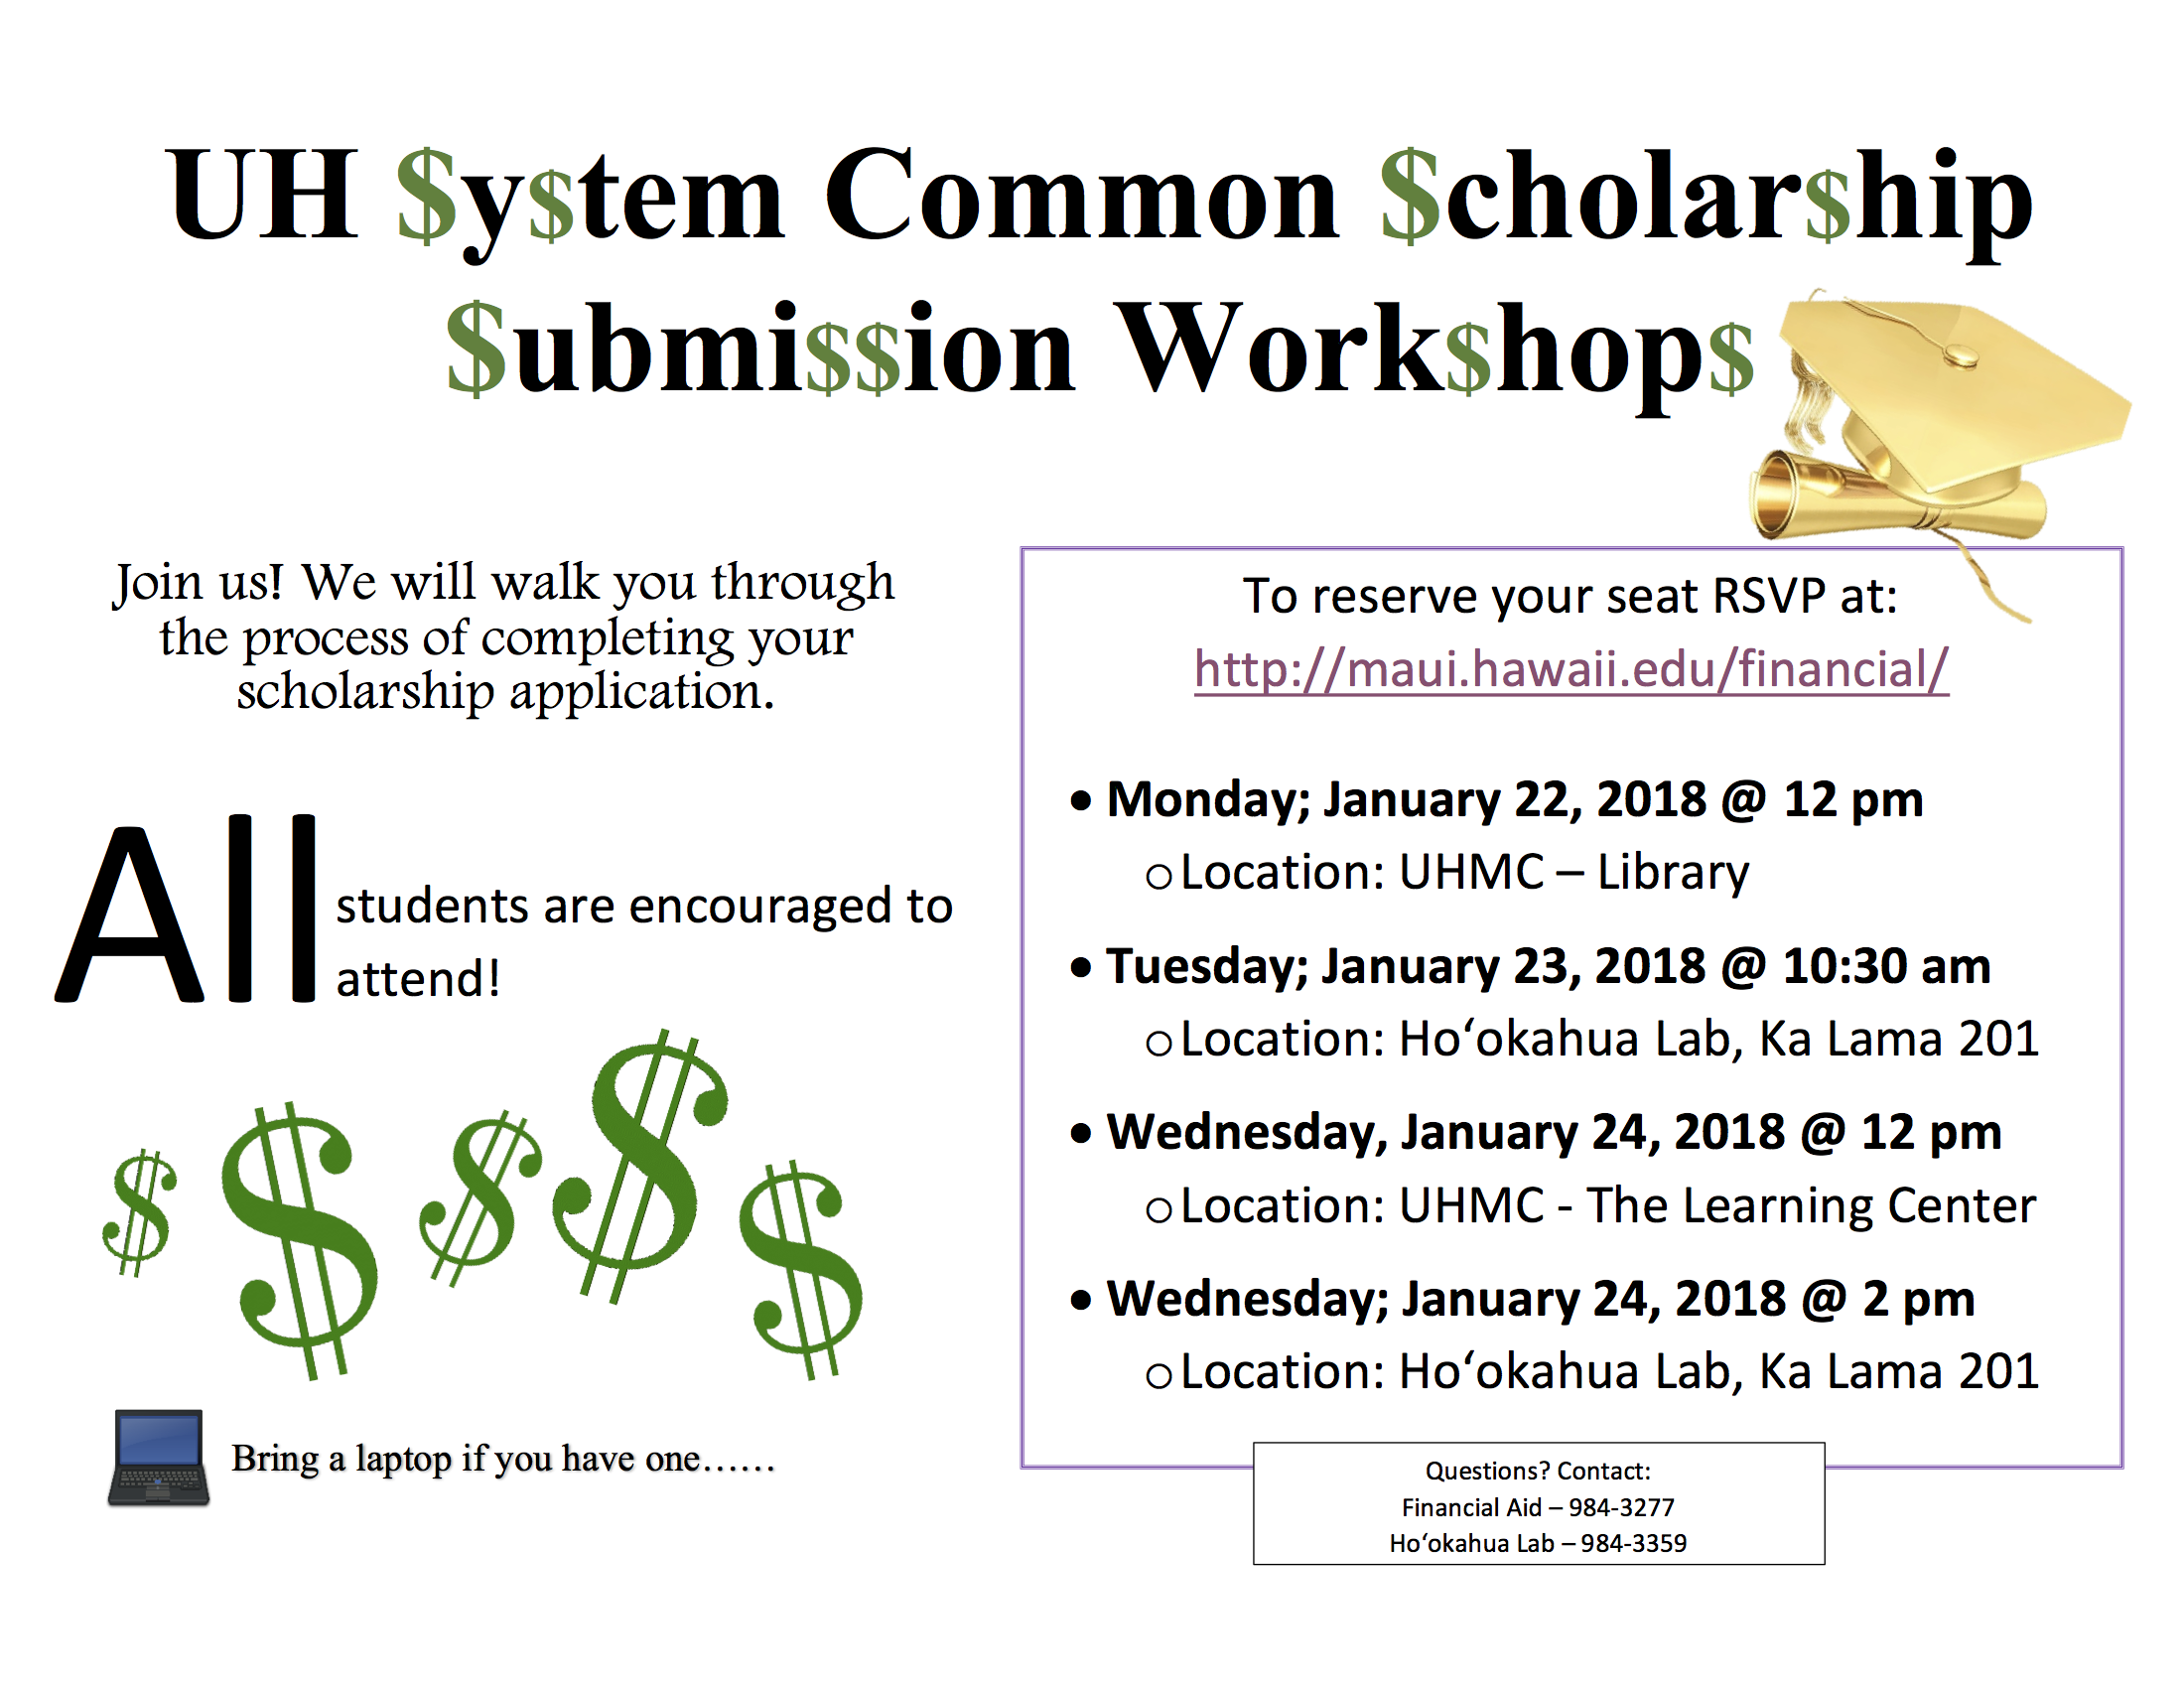 UH System Common Scholarship Workshop